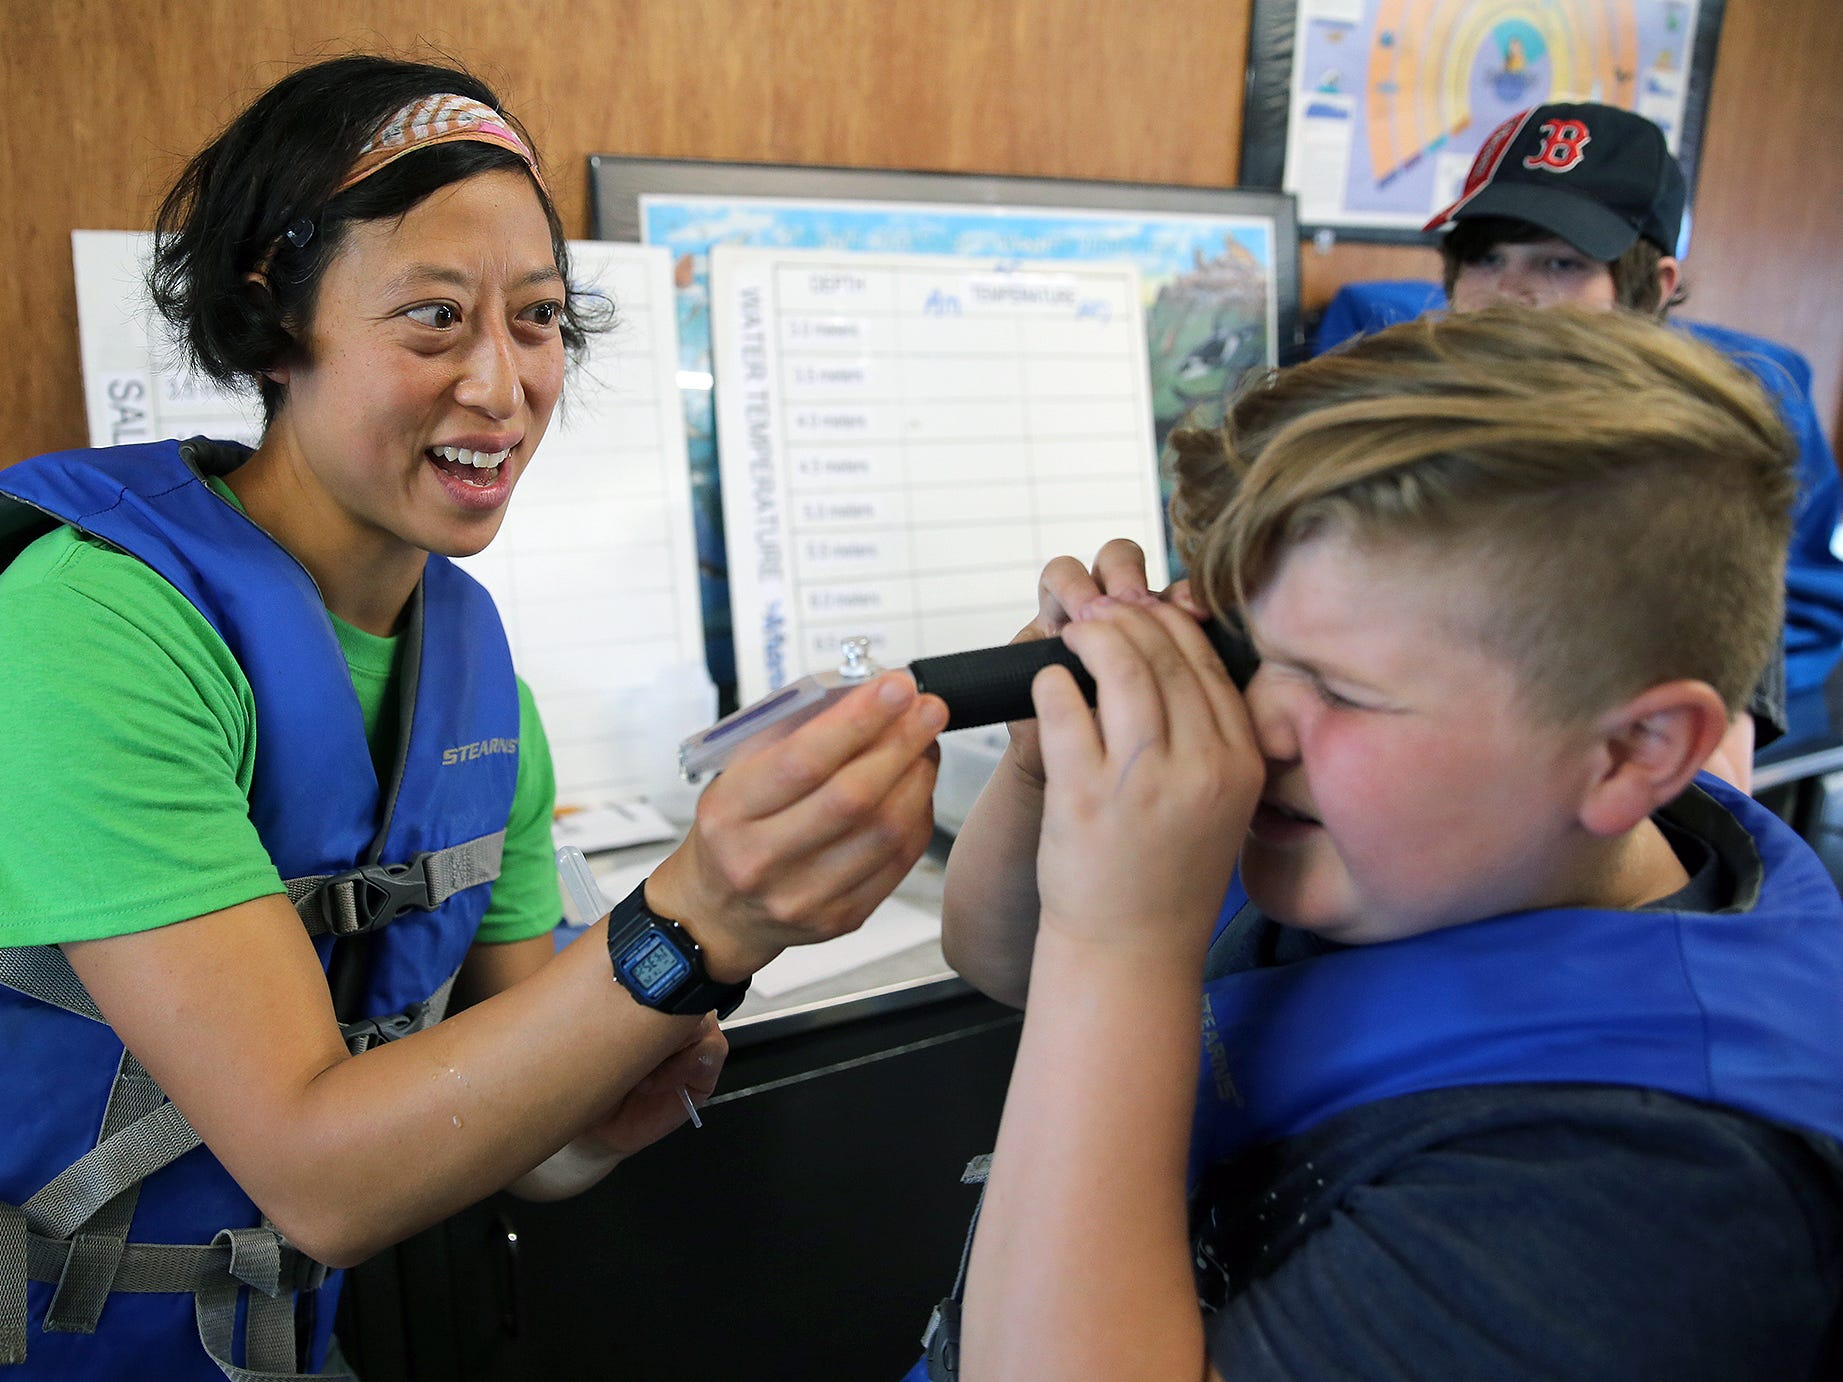 Sylvia Yang, the SEA Discovery Center Director, shows cybersecurity student Quentin Clark, 12, from Bainbridge Island, how to view a salt water sample. Western Washington University is hosted a free cybersecurity camp for middle schoolers at at the SEA Discovery Center in Poulsbo from July 23-27.